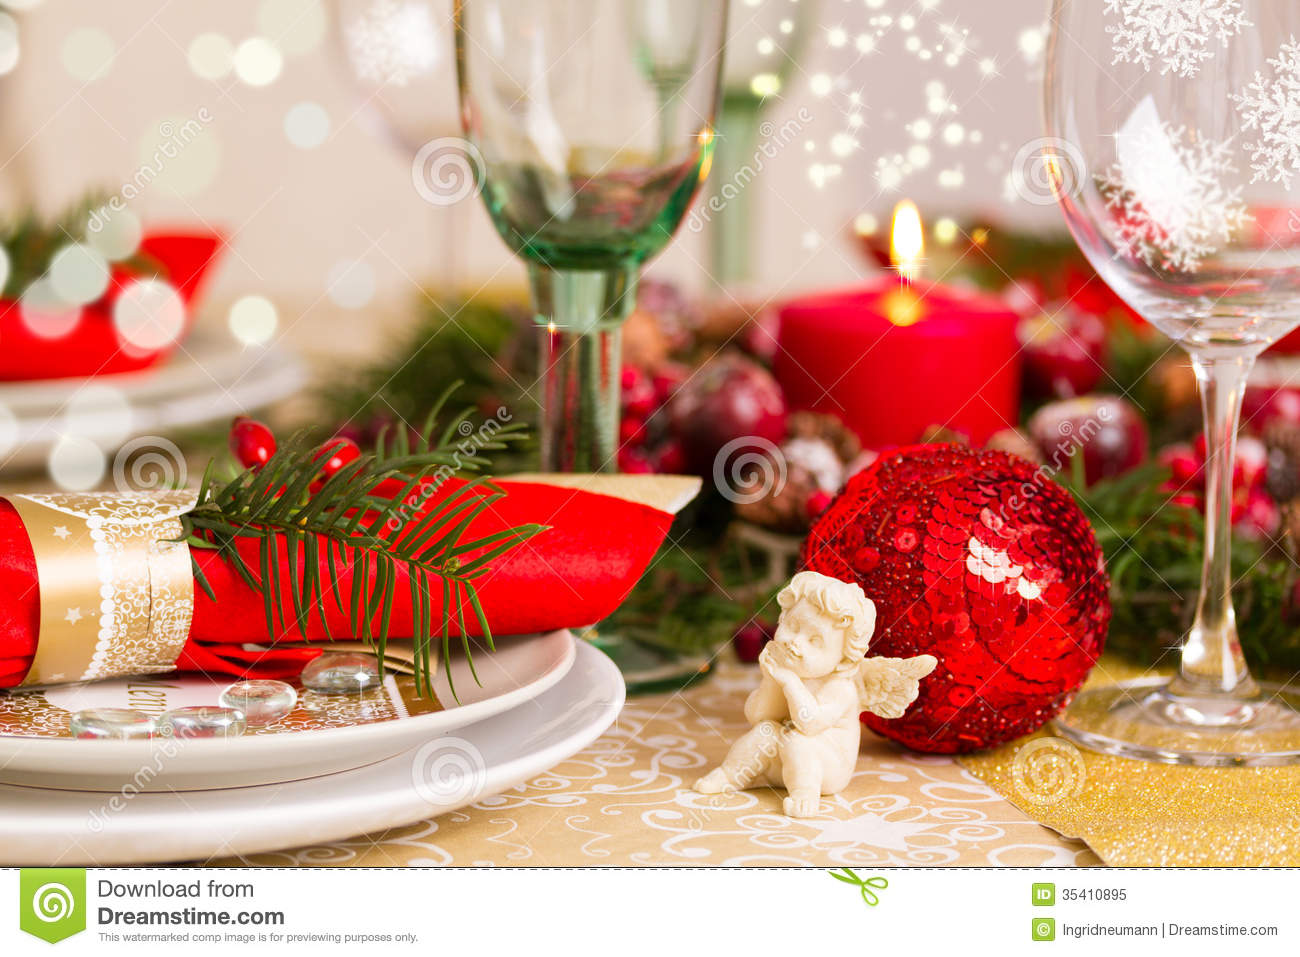 Christmas Table Setting with Holiday Decorations. Merry restaurant. & Christmas Table Setting With Holiday Decorations Stock Image - Image ...